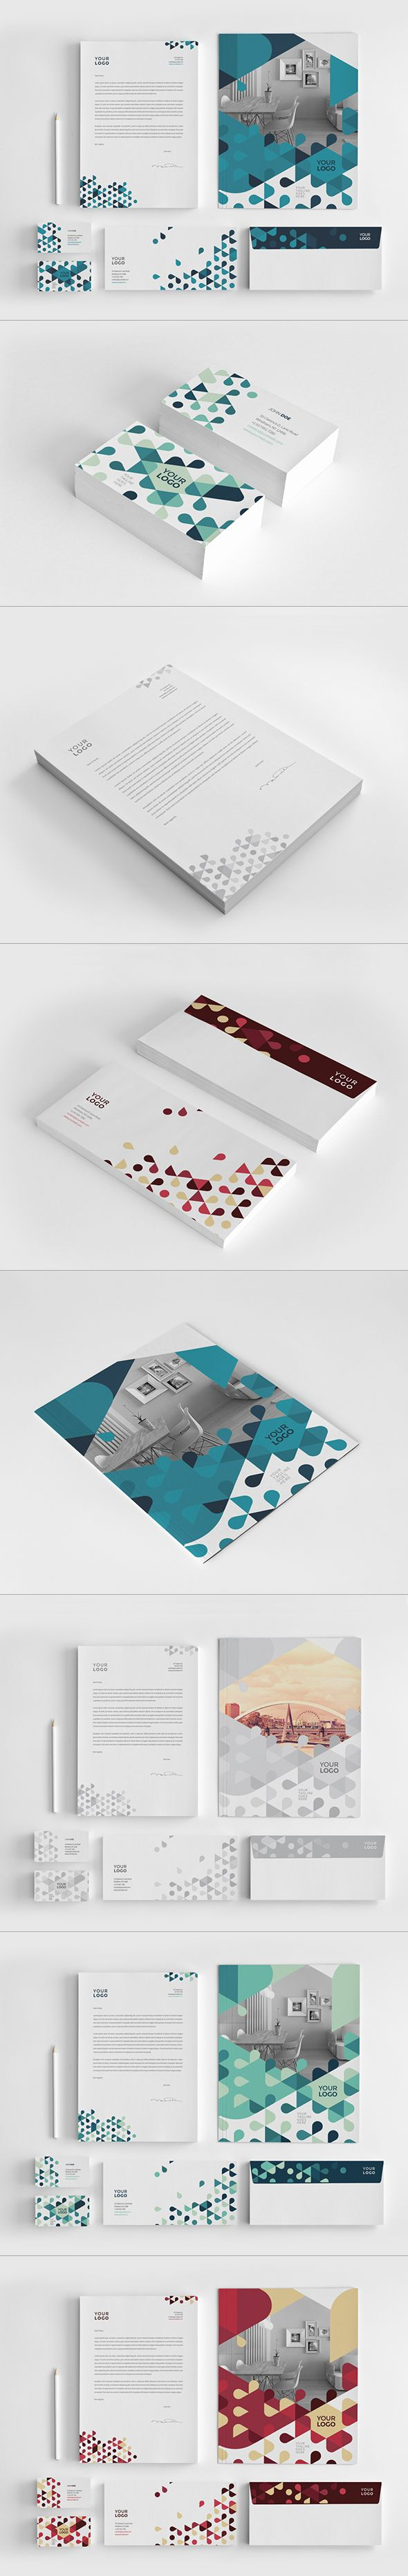 Young Modern Stationery. Download here: http://graphicriver.net/item/young-modern-stationery/8407744?ref=abradesign#design #stationery